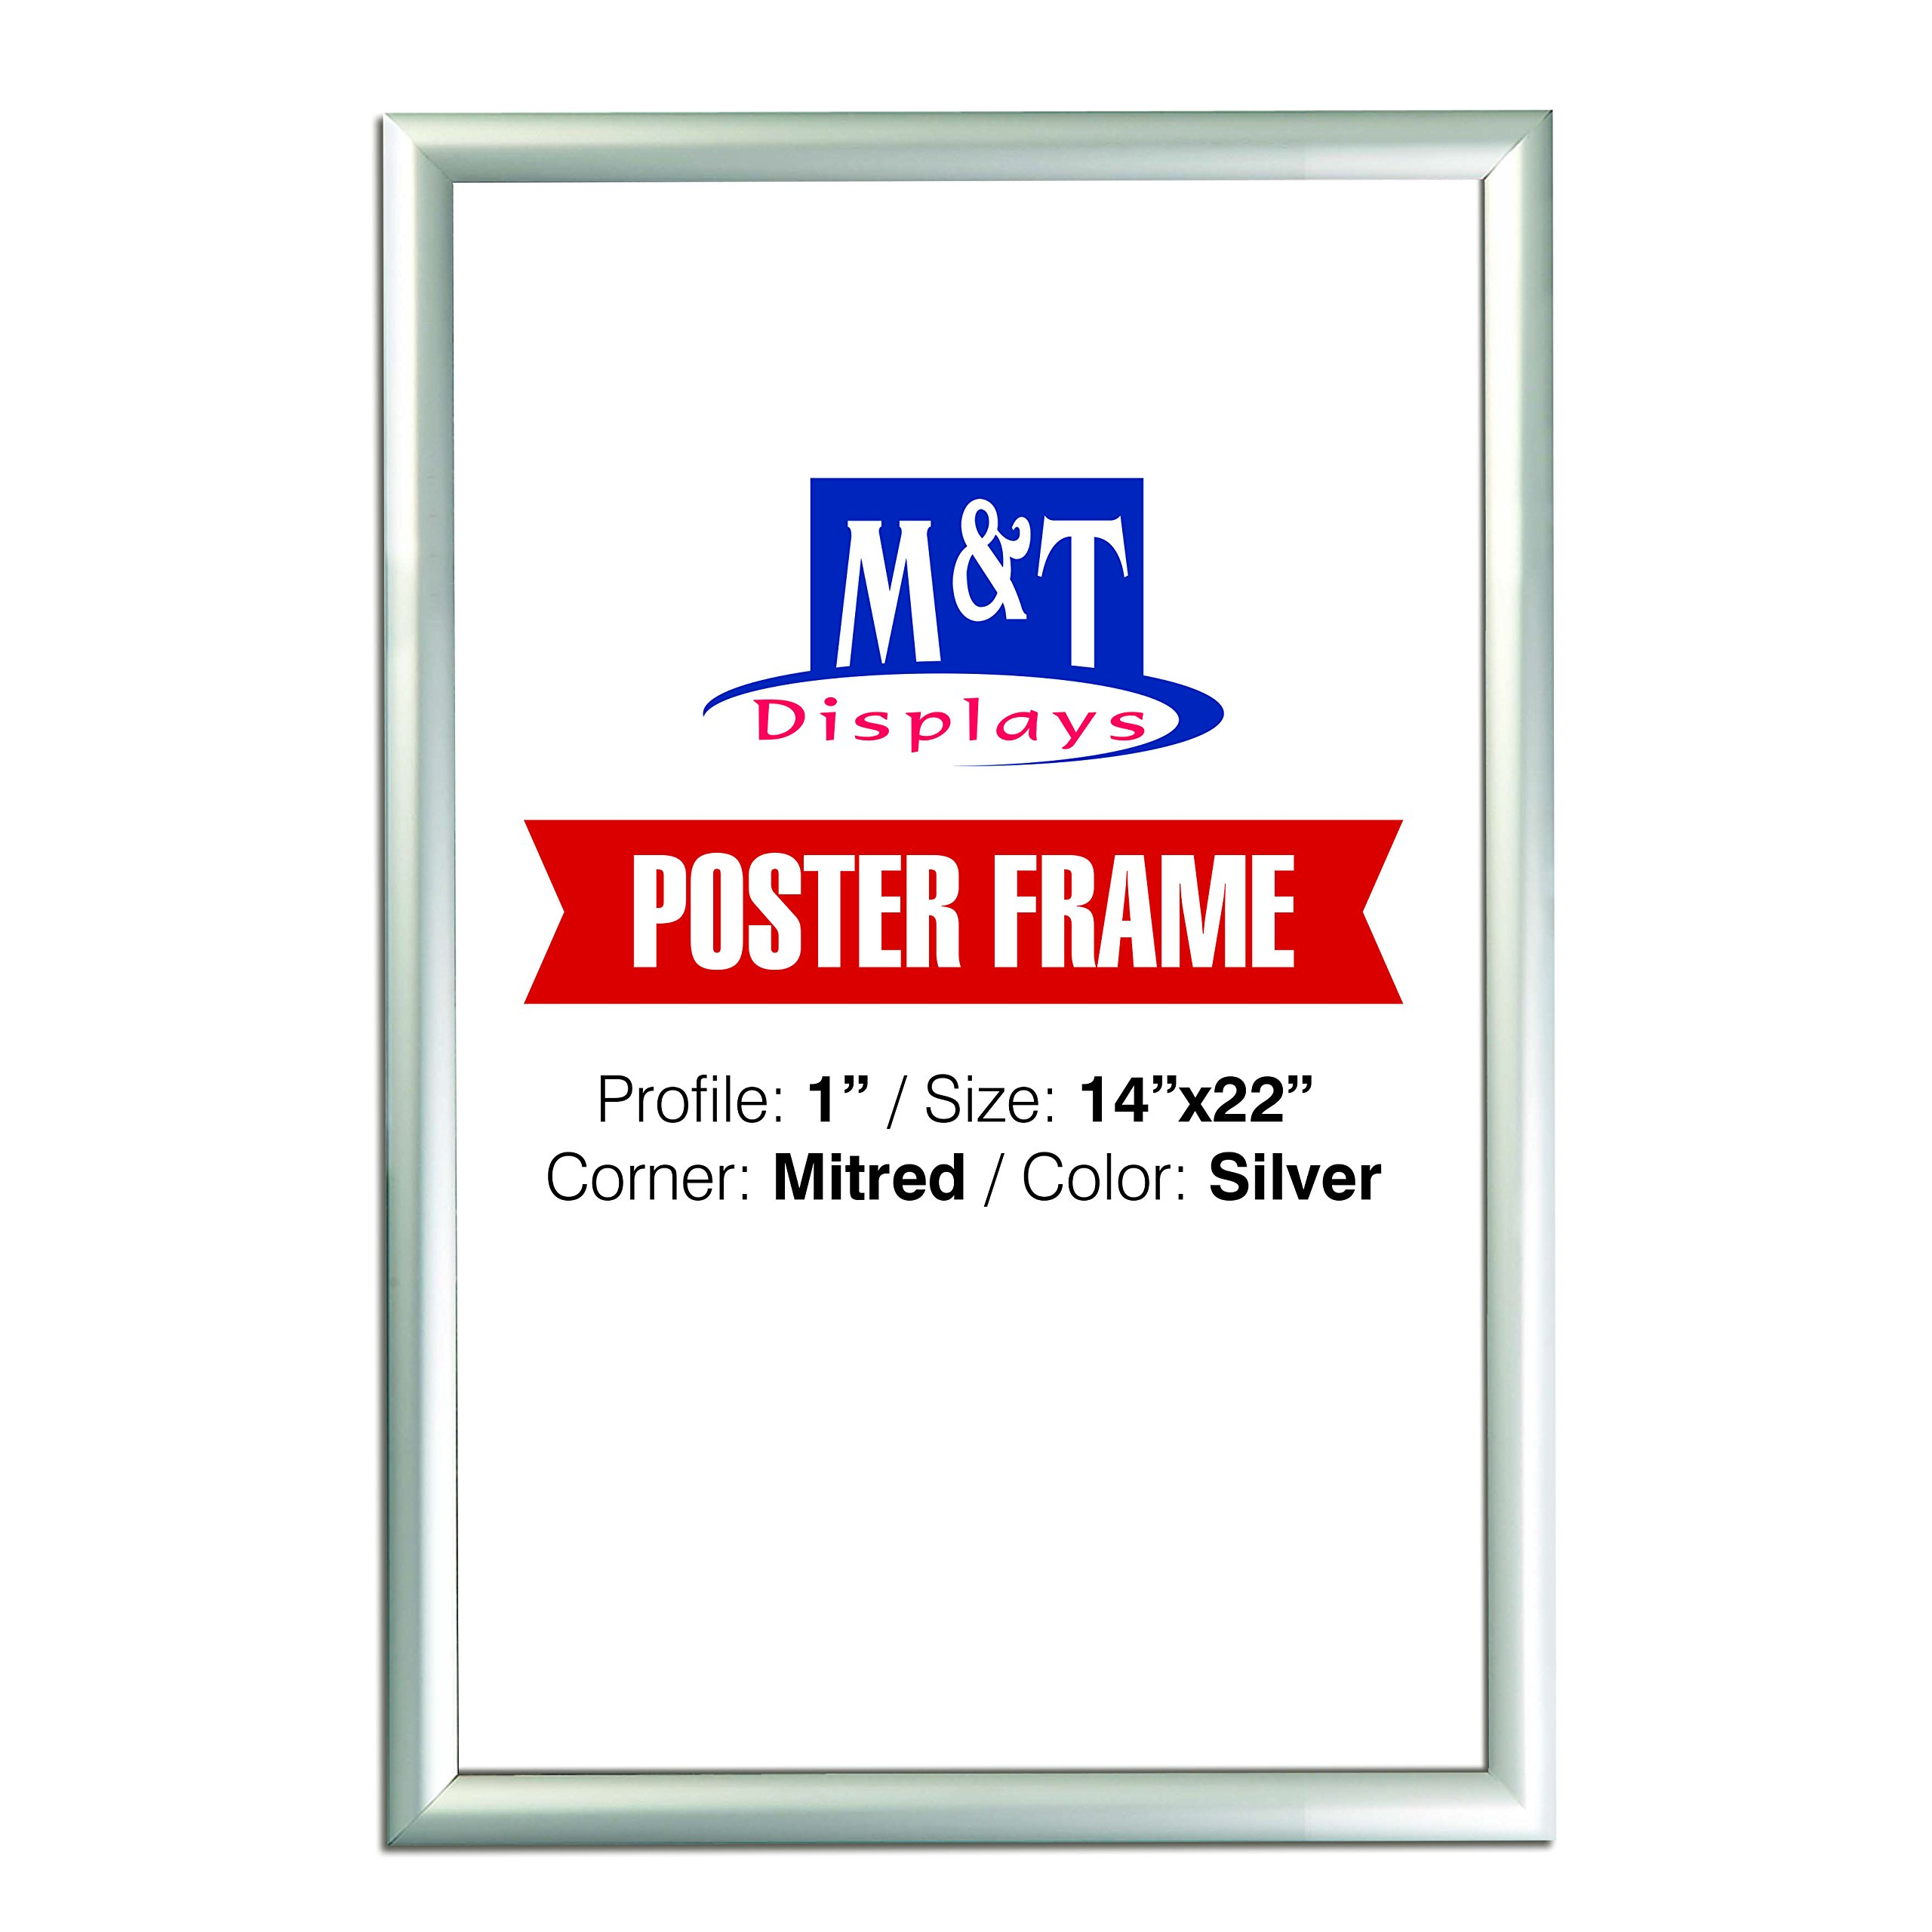 M&T Displays Snap Frame 14 X 22 Inch, Poster Size 1 Inch, Silver Color Profile, Mitred Corner, Front Loading